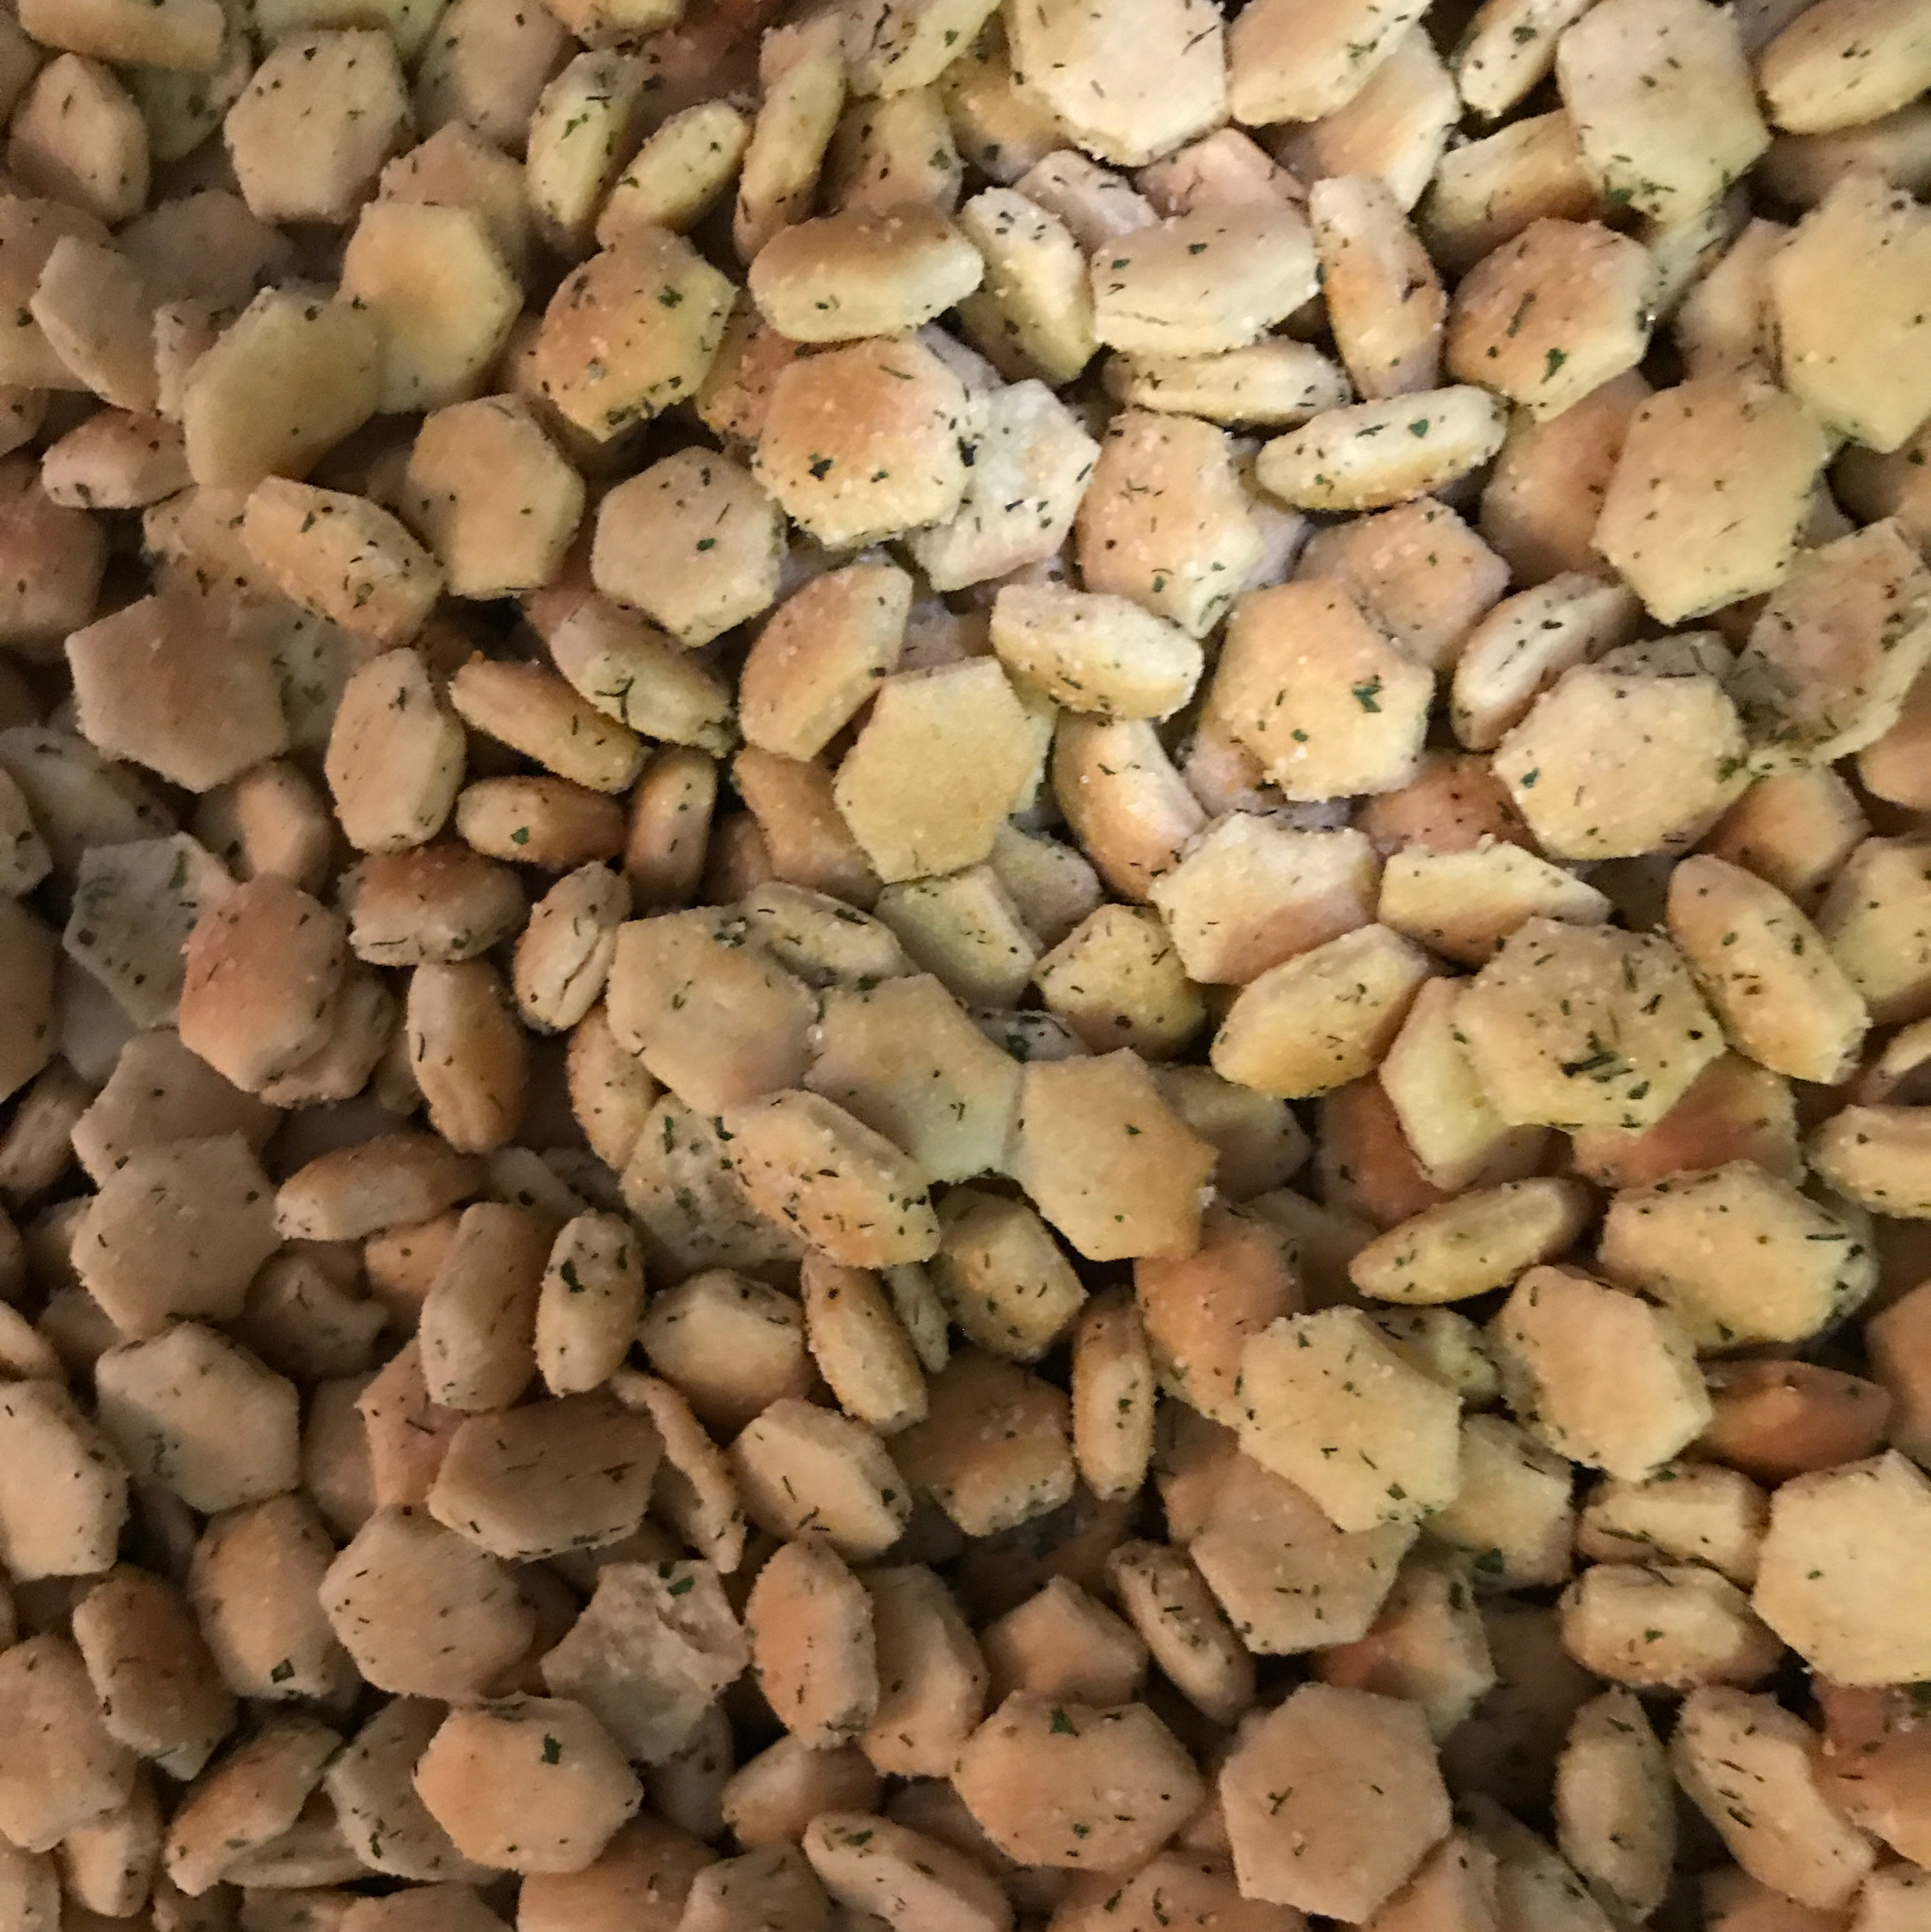 Tasty Seasoned Oyster Crackers LeasaPhipps